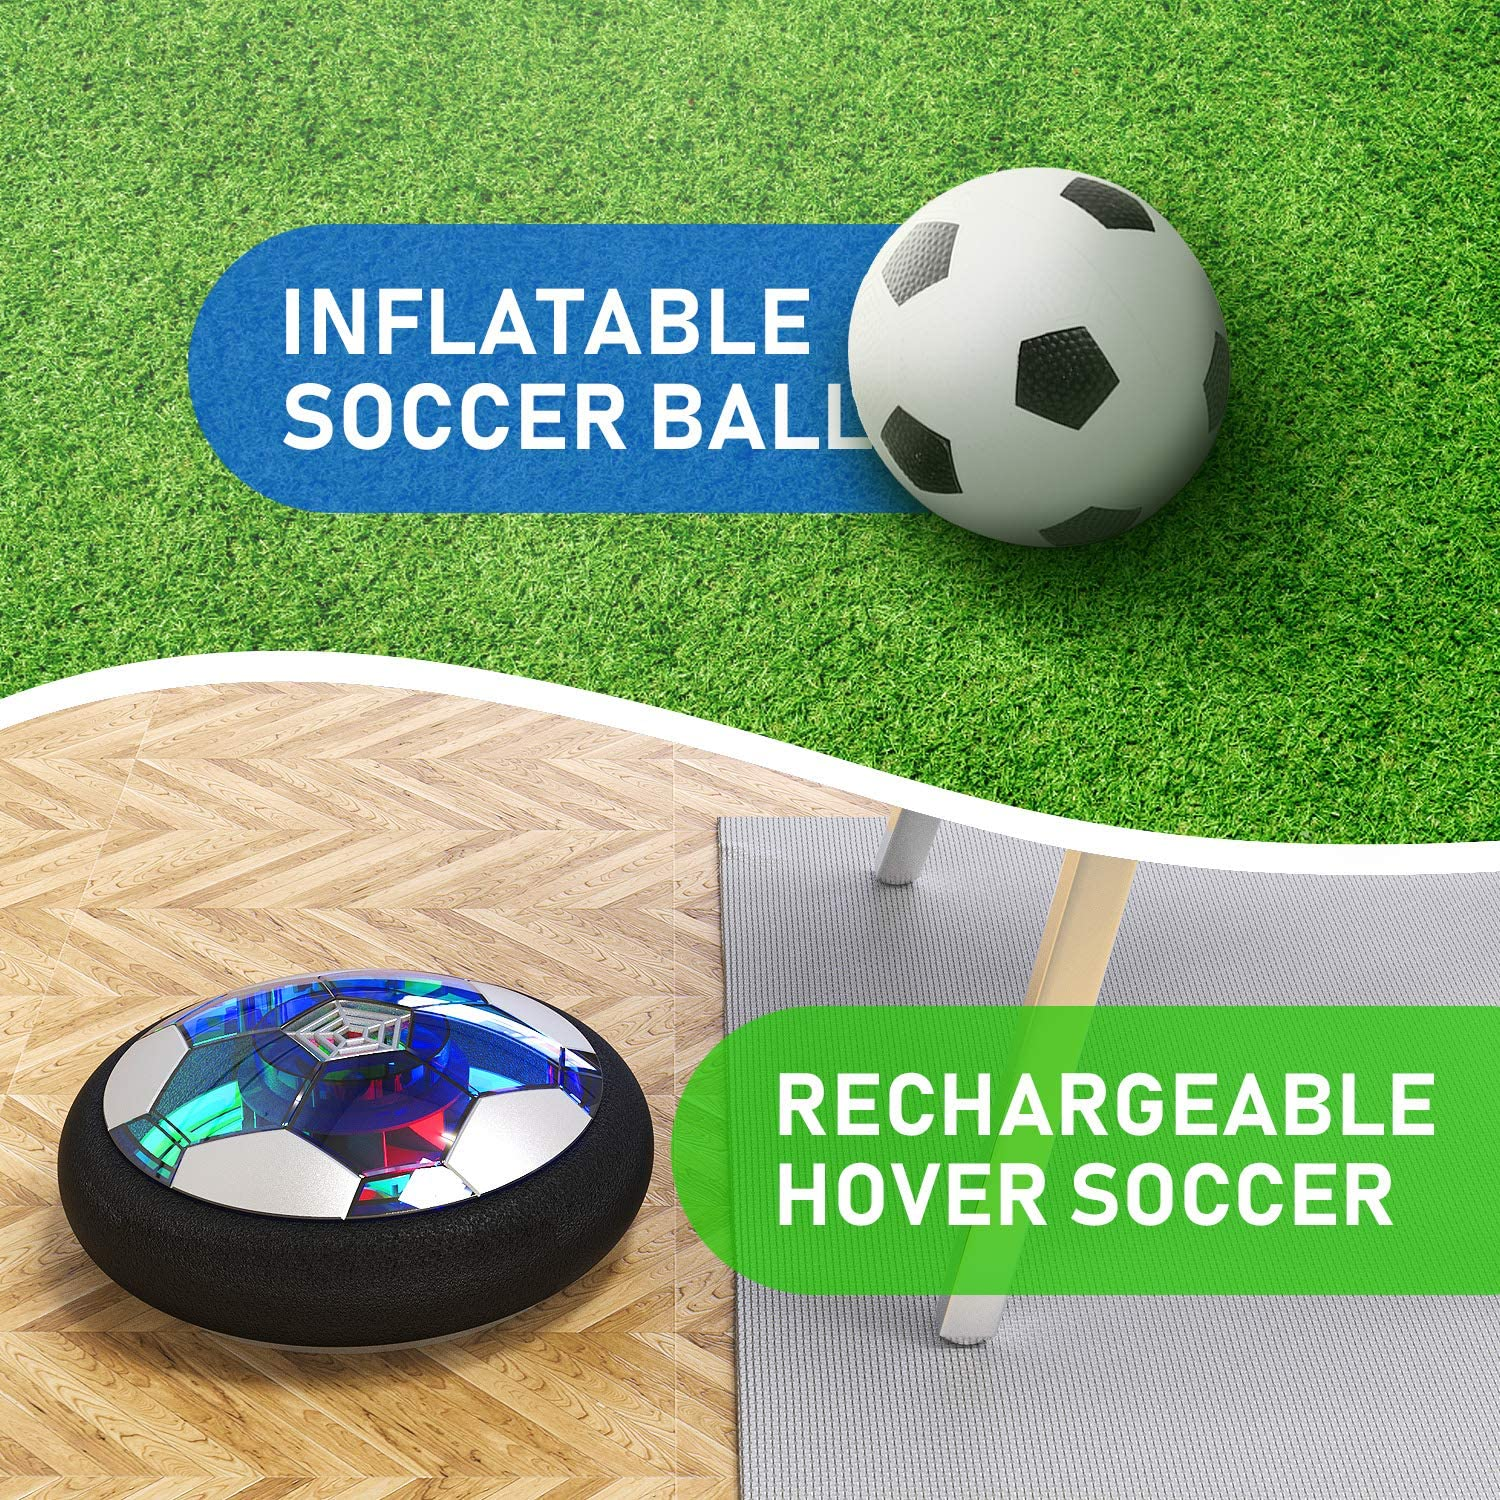 2020 Upgraded Hover Soccer Ball Floats Glides Optional Goal Net